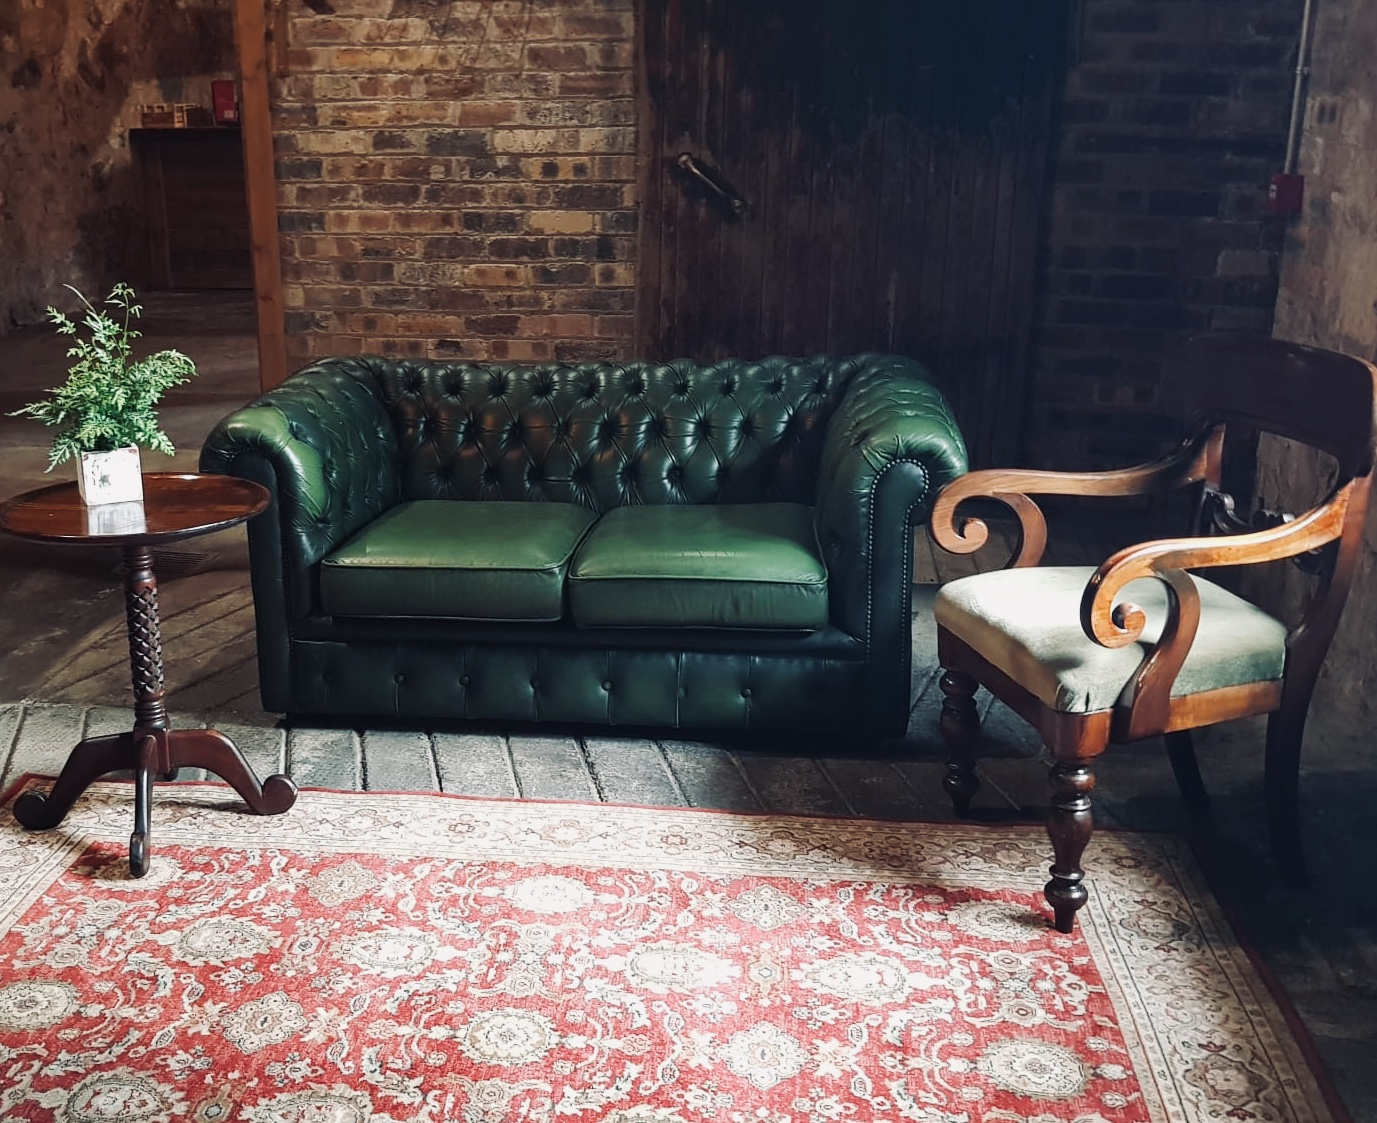 Green Chesterfield and Armchair Relaxed Seating Area - seats 3